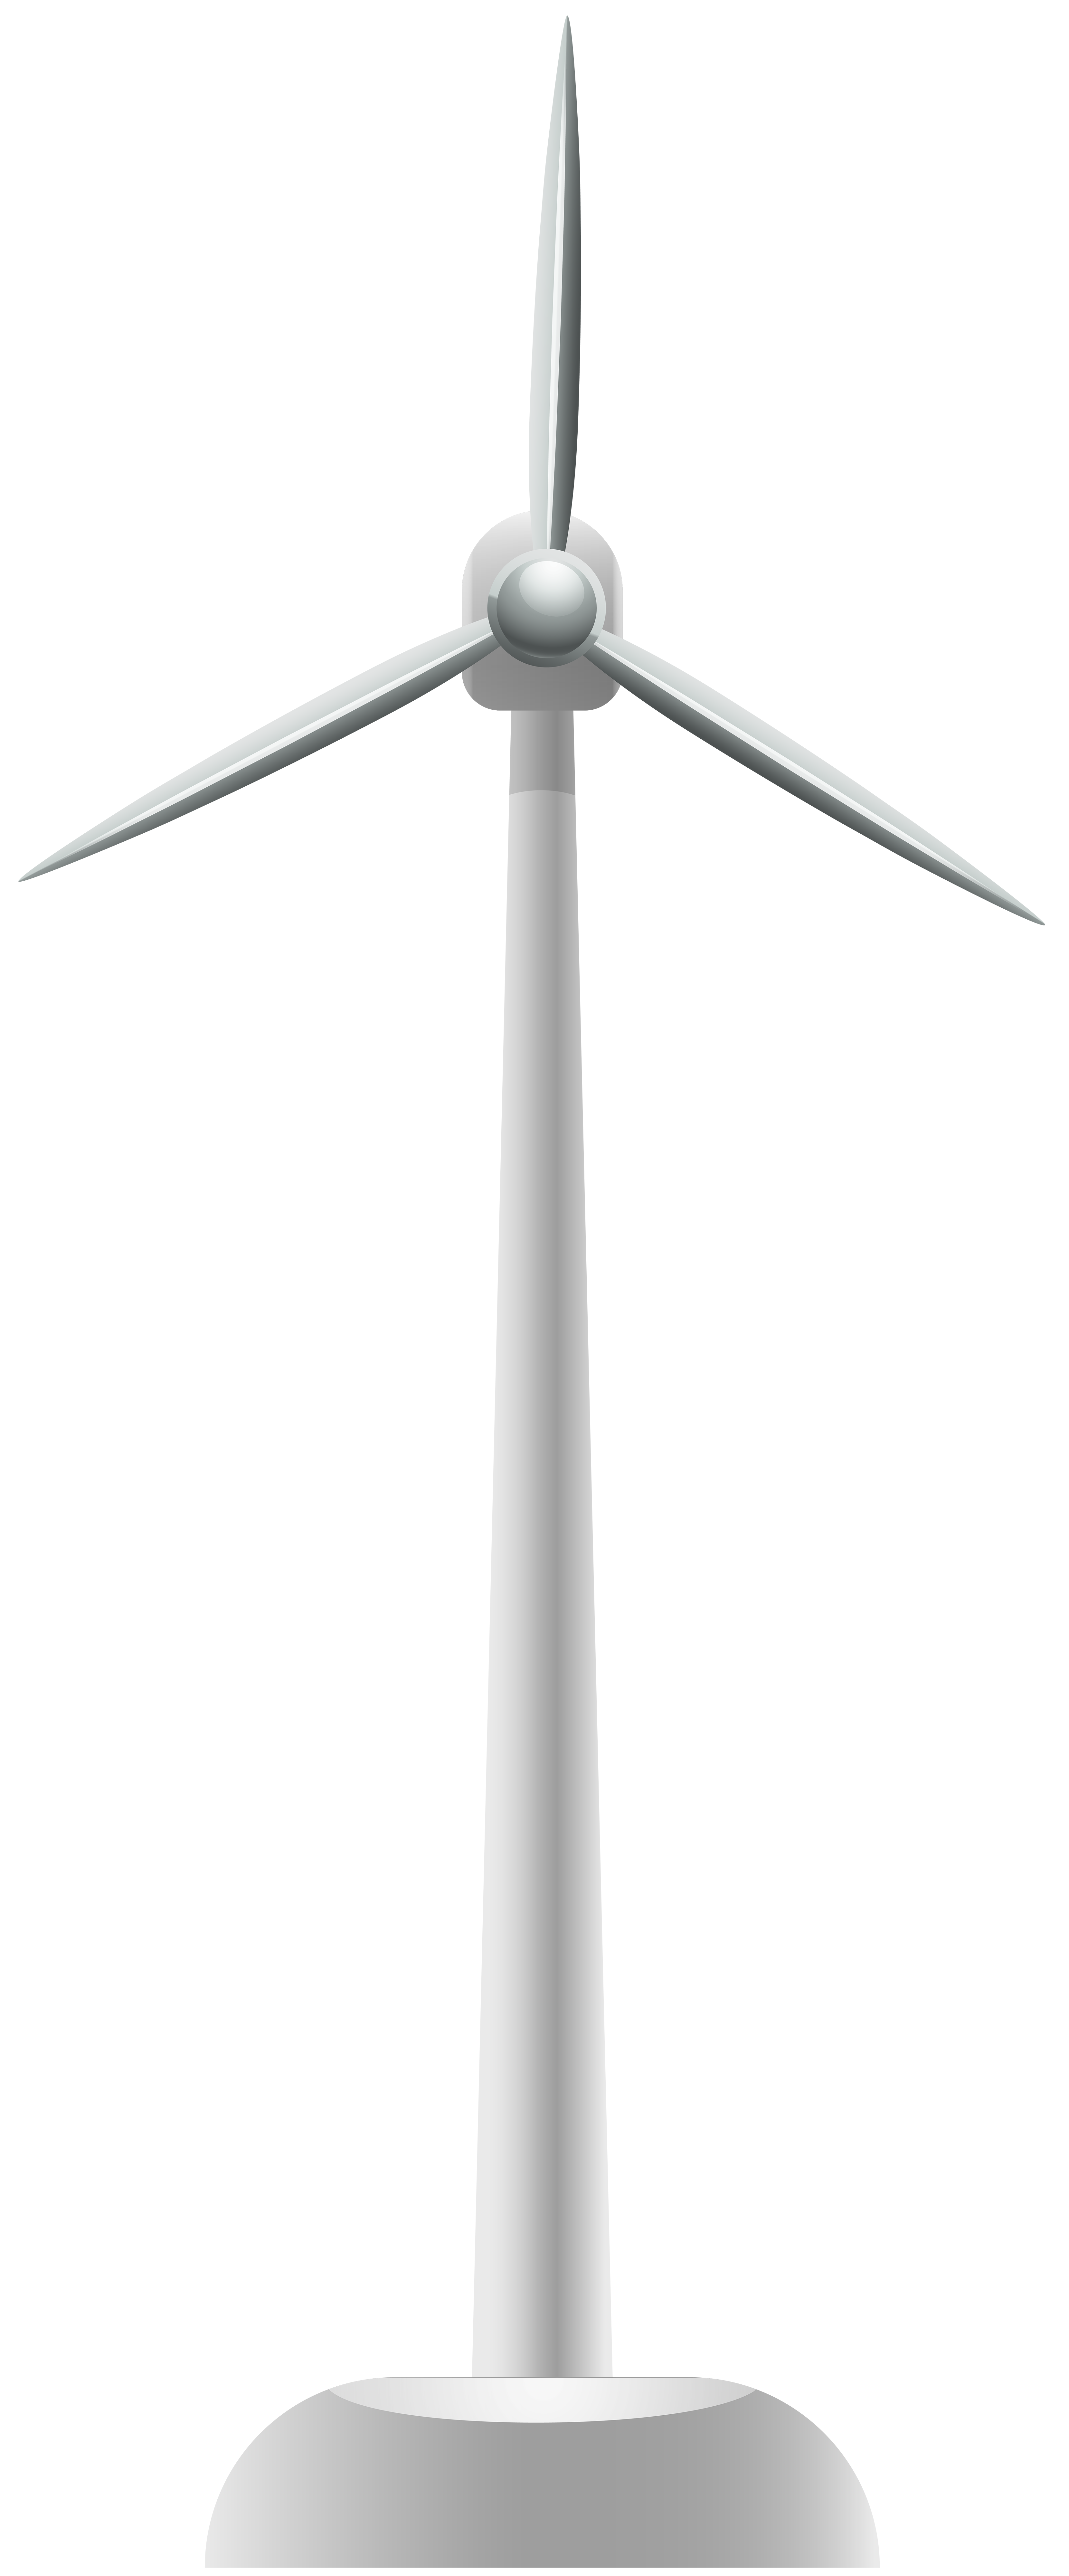 jpg free library Turbine clipart. Wind png clip art